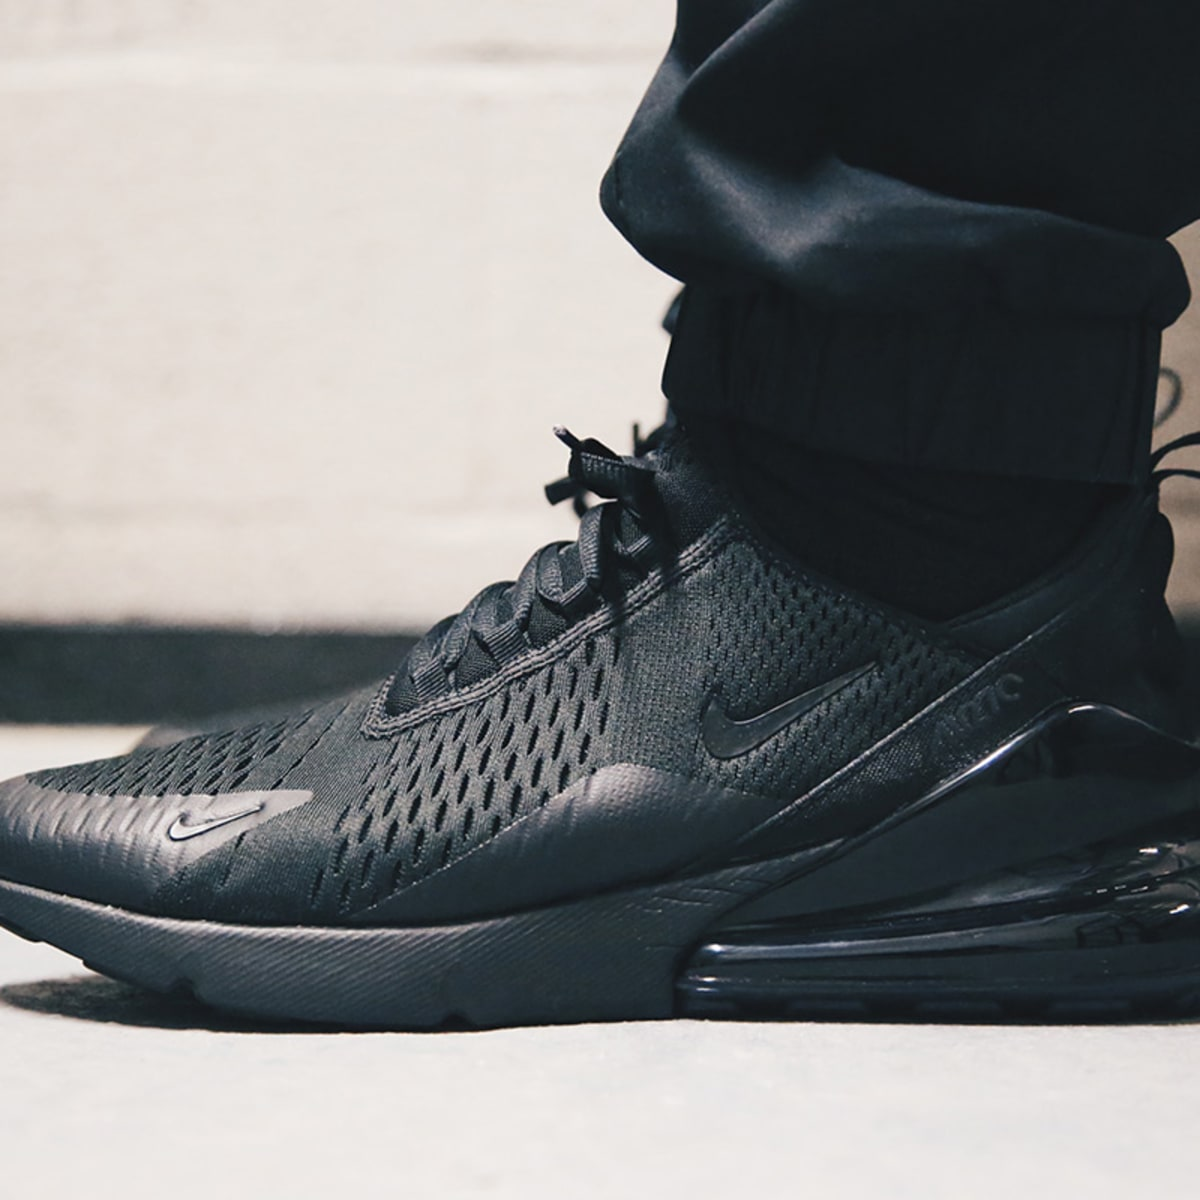 Perceptivo ornamento Rocío  The Nike Air Max 270 Is Set to Debut in a Triple-Black Colorway - Freshness  Mag